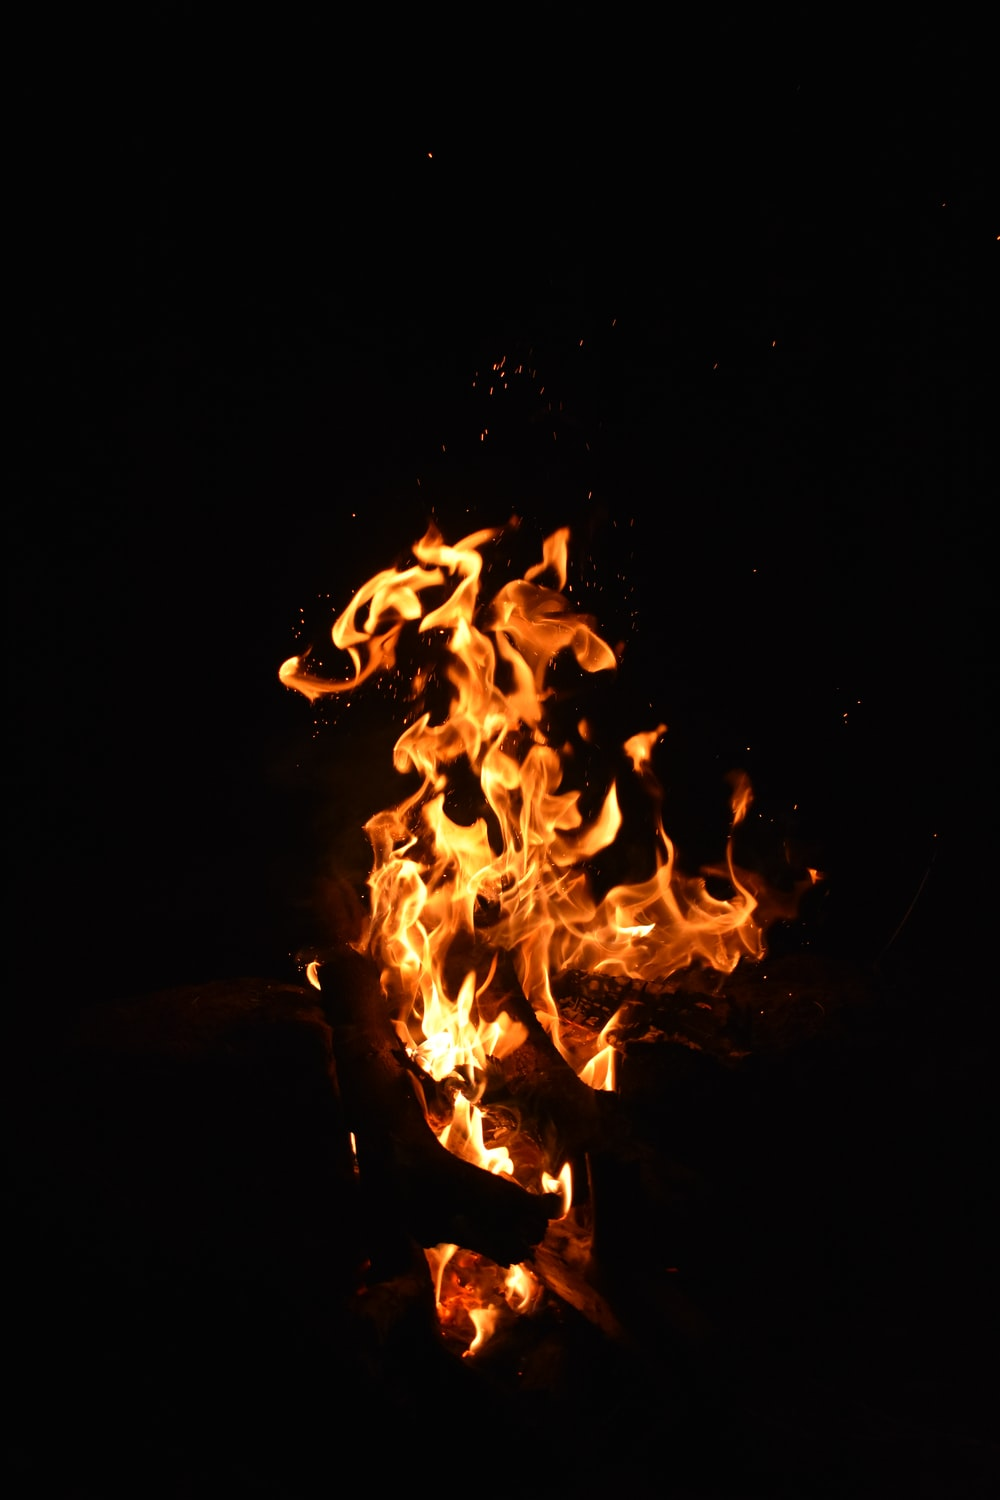 fire in the middle of the dark